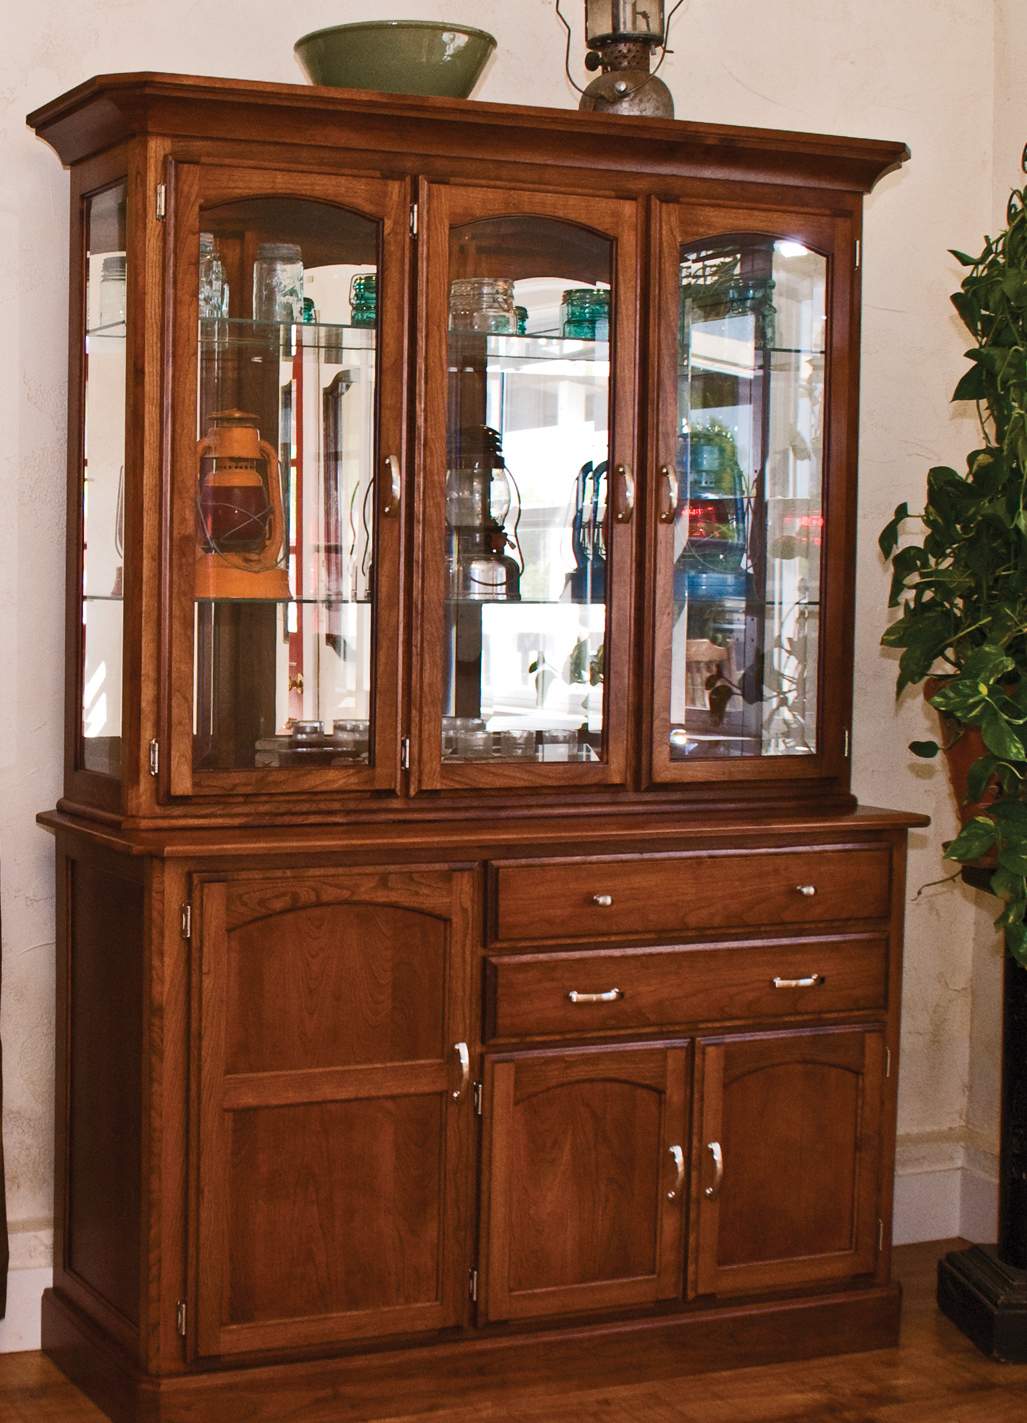 Newport Hutch and Base